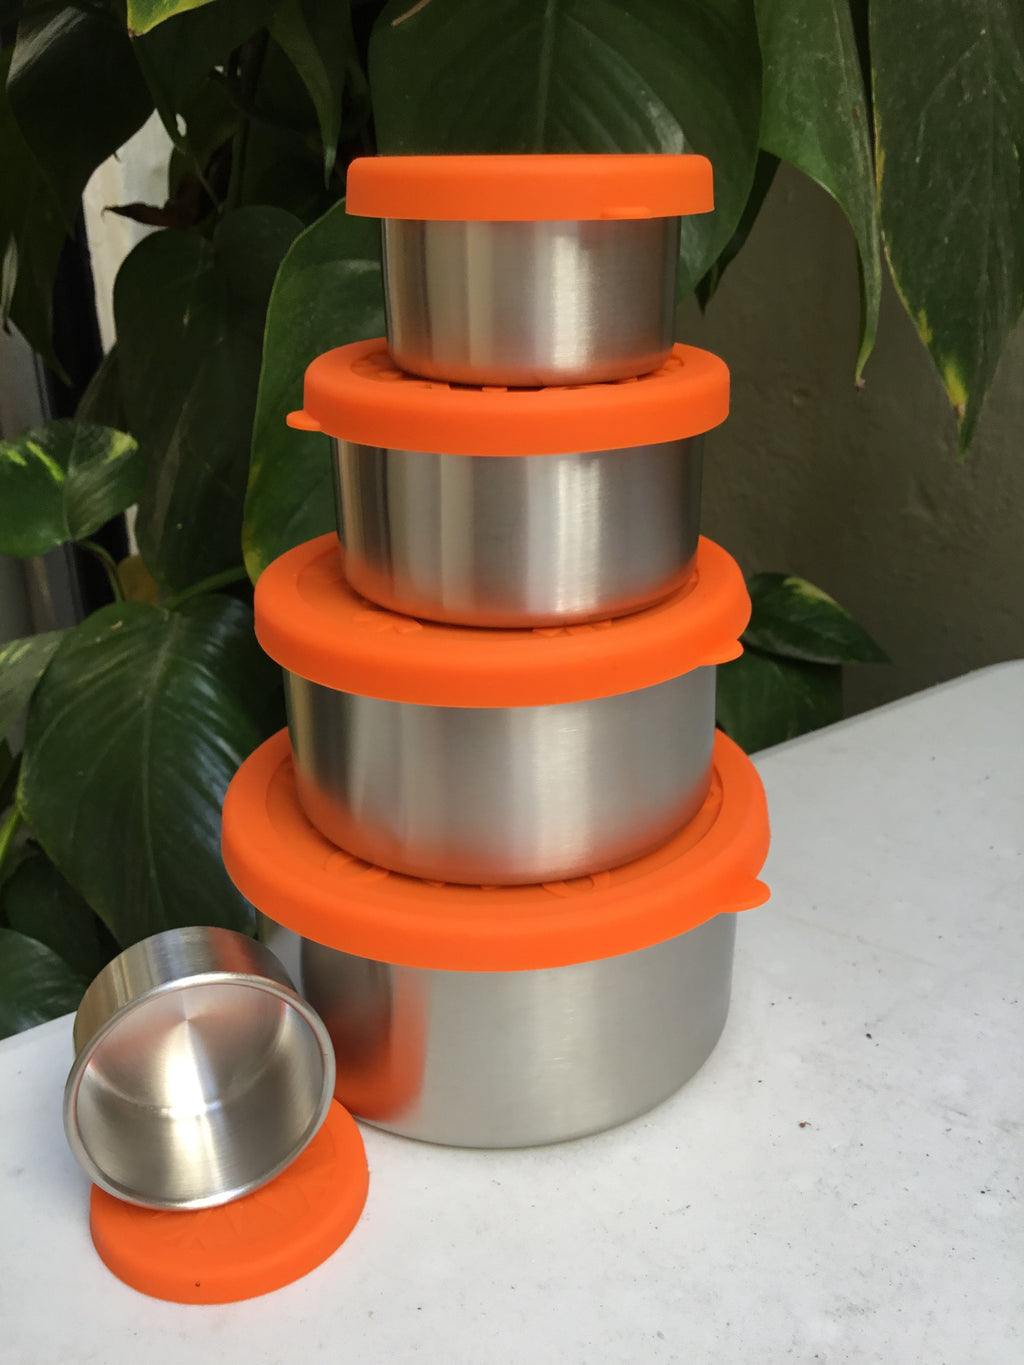 Stainless Steel Round Containers Set - 5 pcs